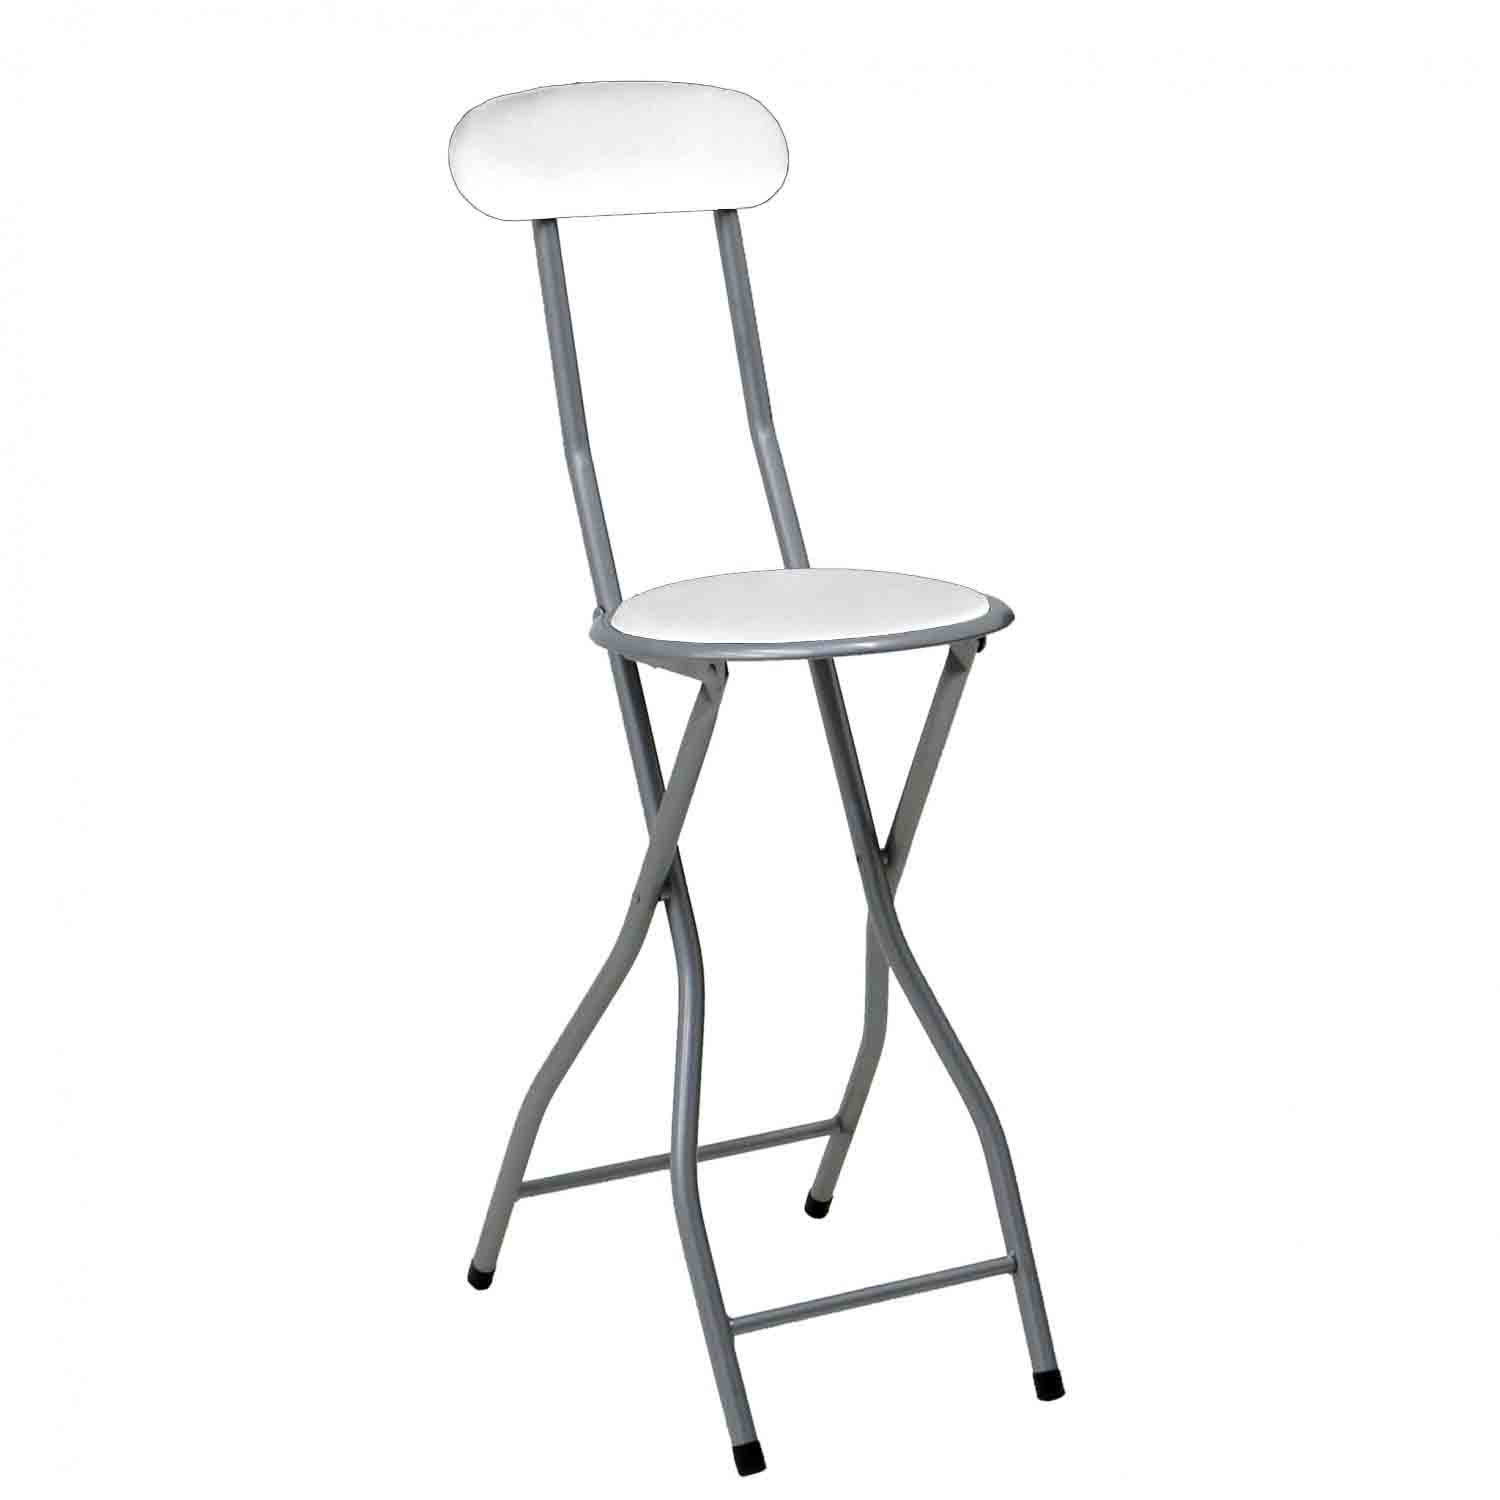 White Padded Folding High Chair Breakfast Kitchen Bar Stool Seat